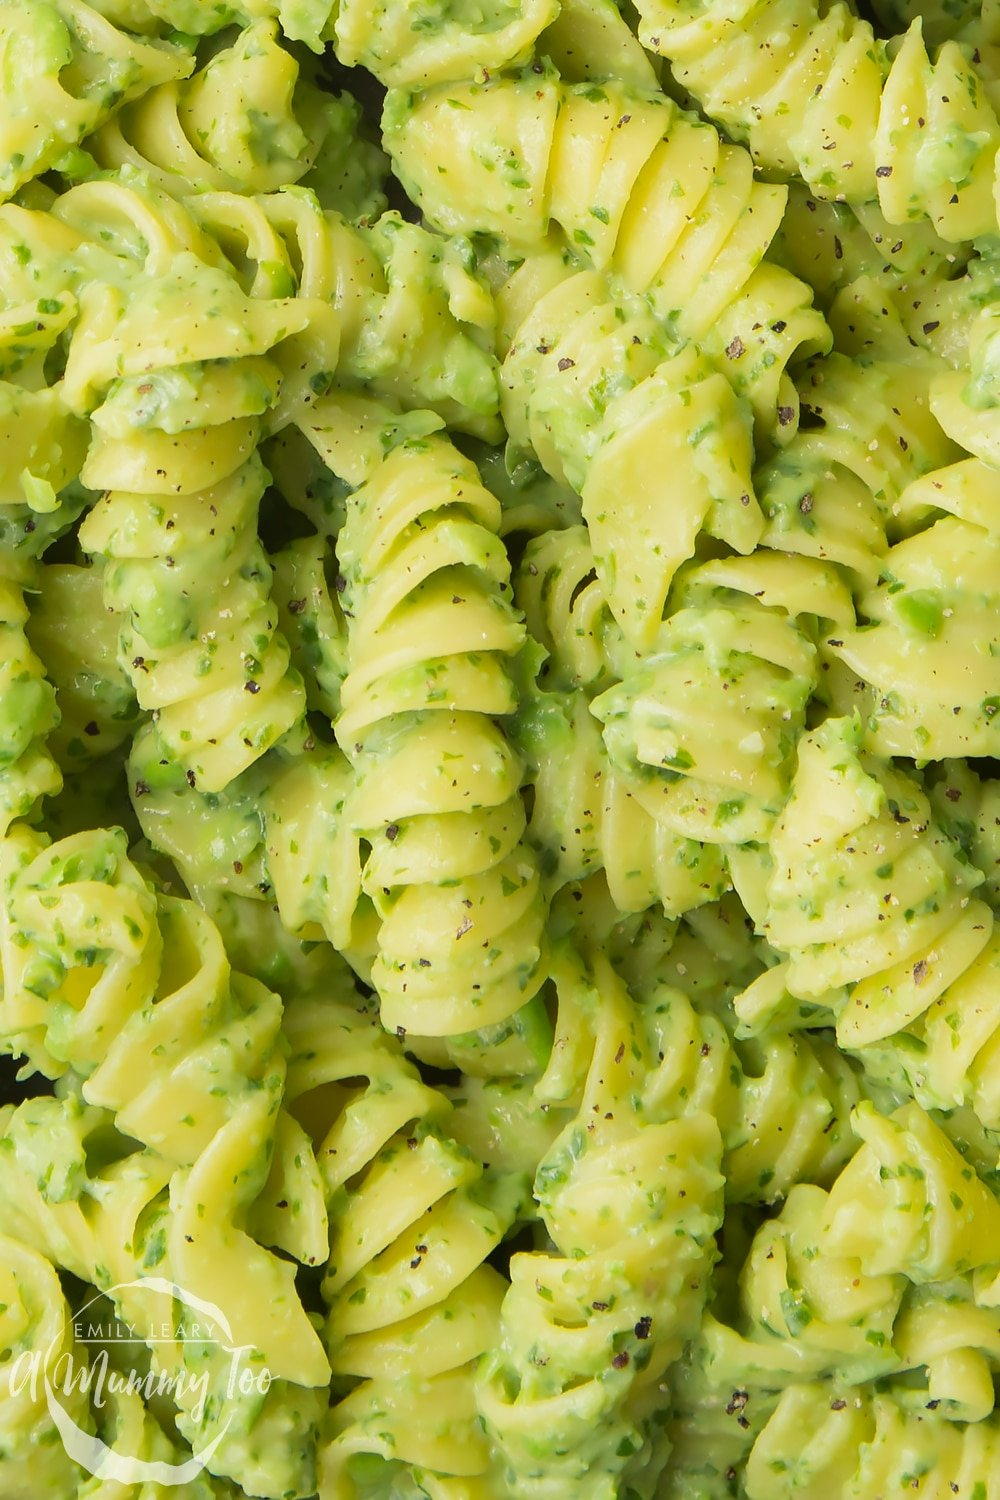 Close up of pasta coated in green pasta sauce